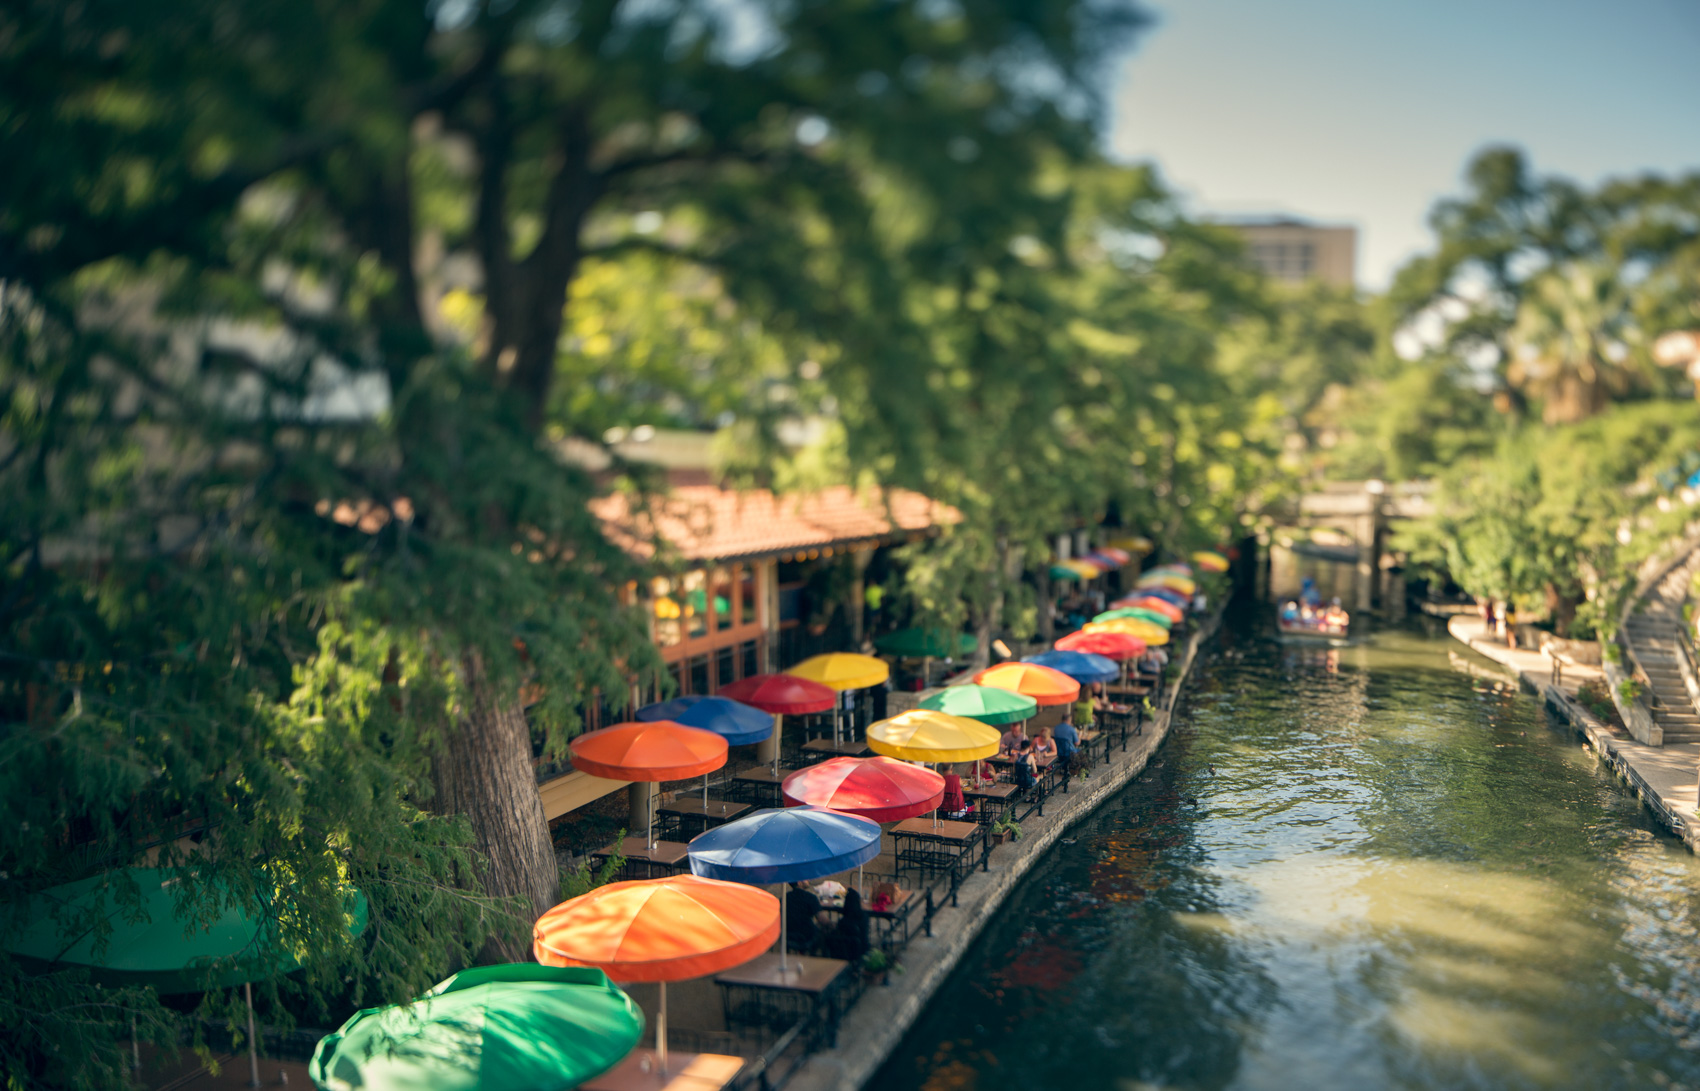 jason-risner-photography-san-antonio-riverwalk-6-a